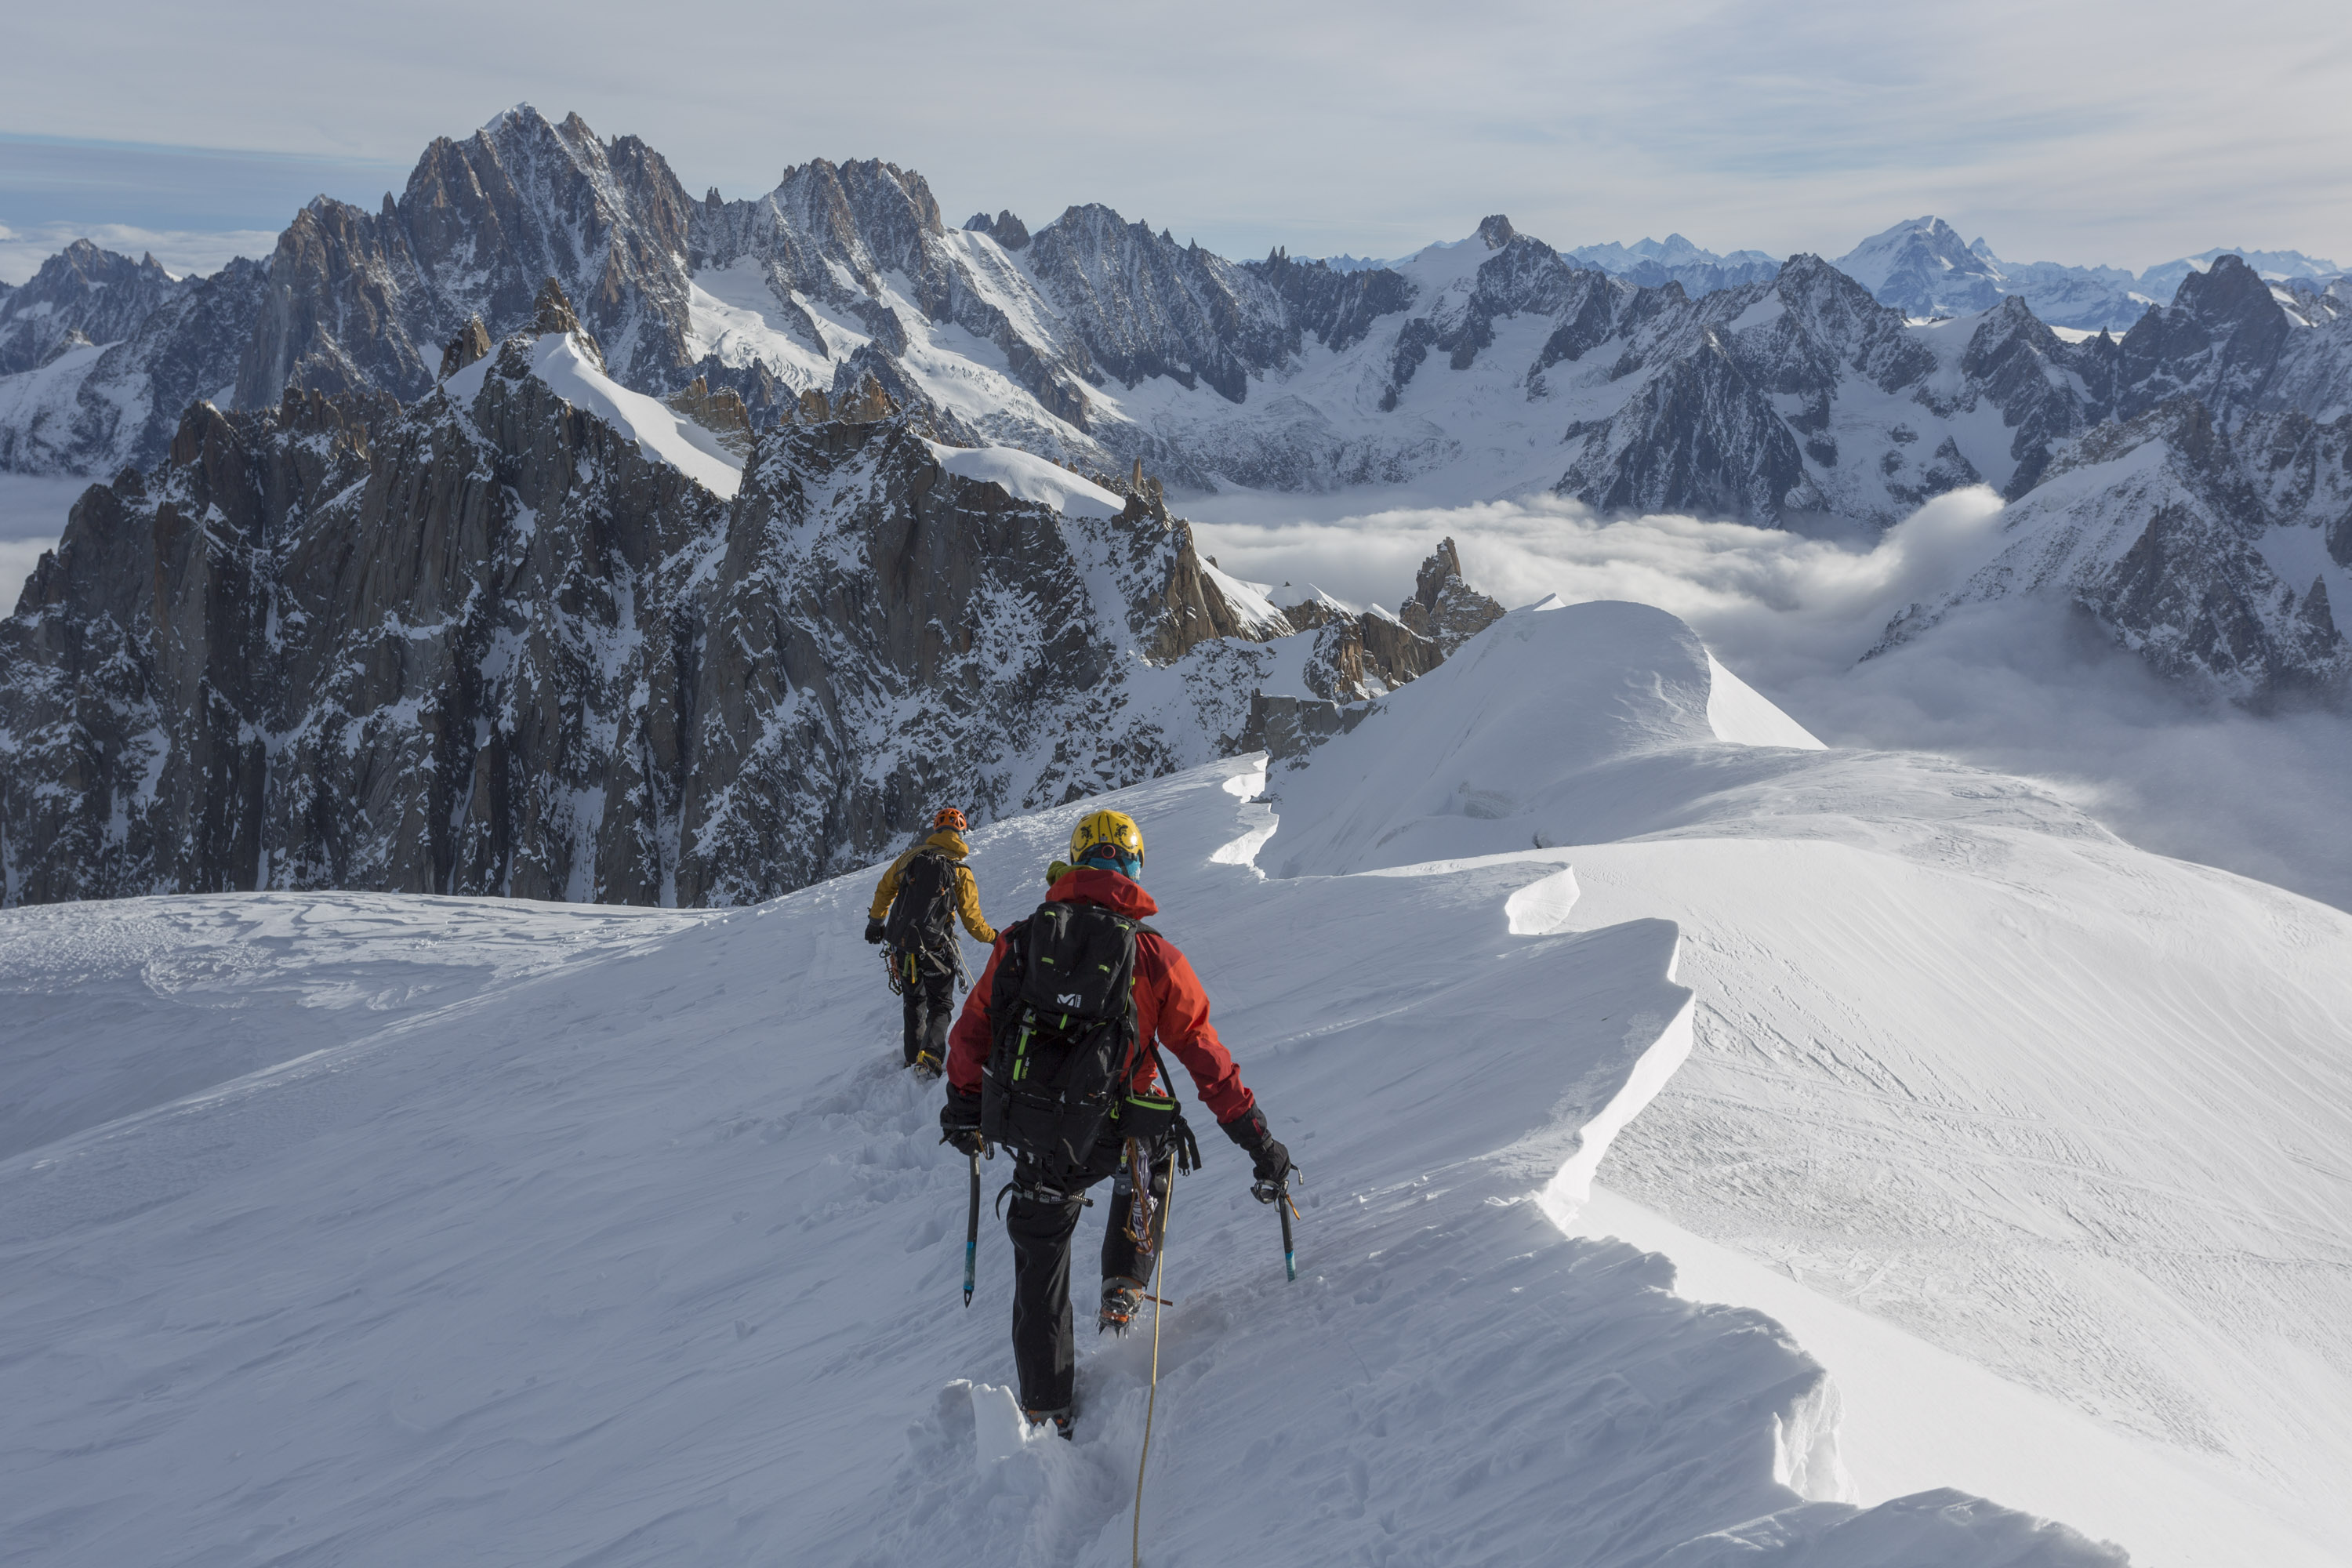 Matt and Craig descending towards the Vallee Blanche from the Aiguille du Midi. Canon 5D MkIII, Canon EF 17-40mm f/4L USM Lens at 36mm, ISO 100, 1/320 sec at f/9. Handheld. October. © Stuart Holmes